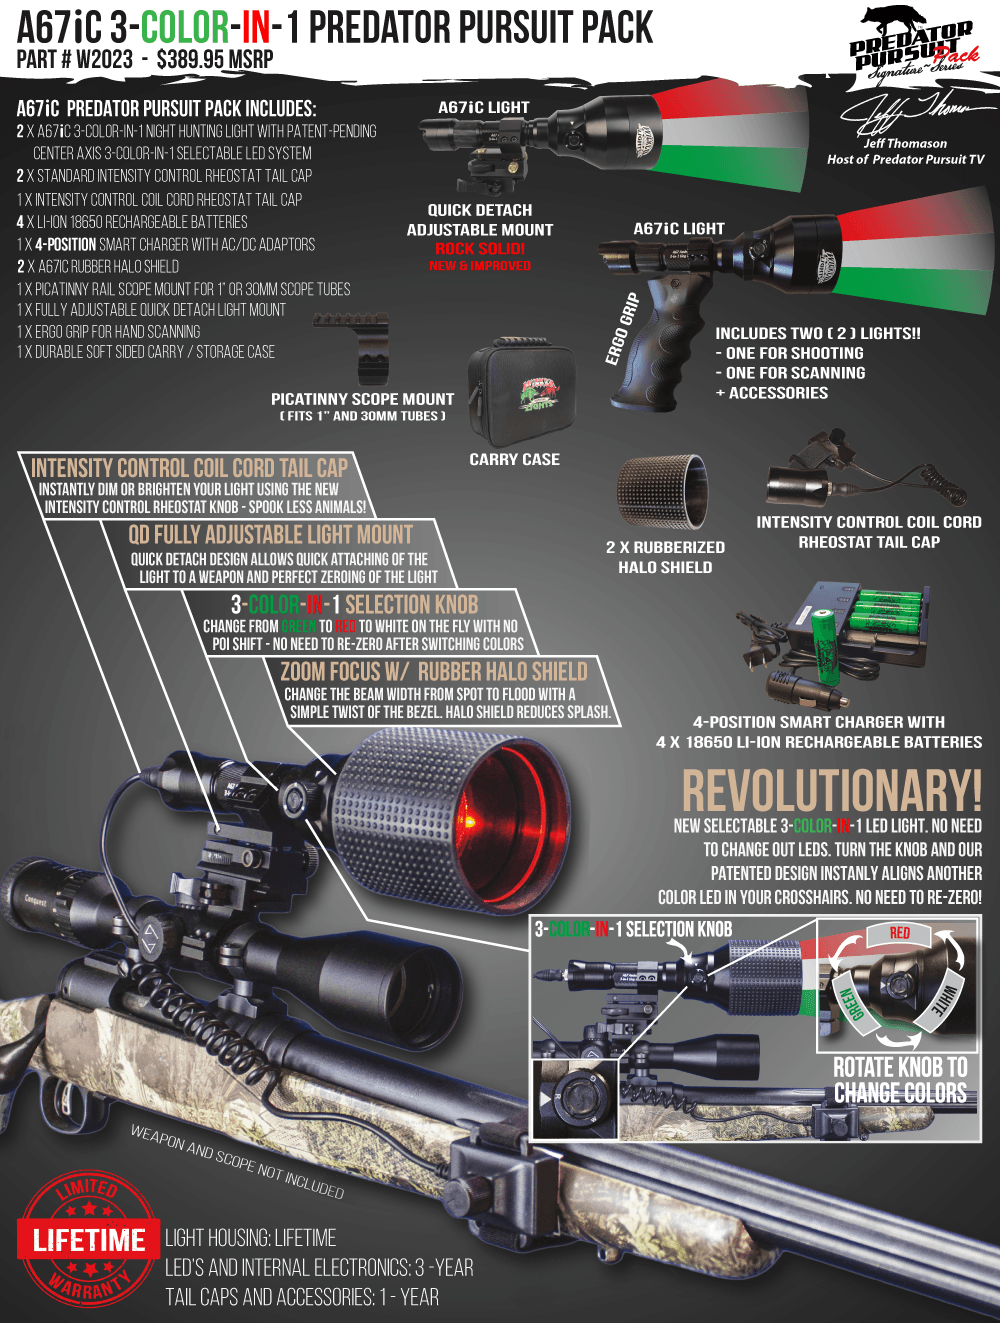 Wicked Lights A67iC Predator Pursuit Pack